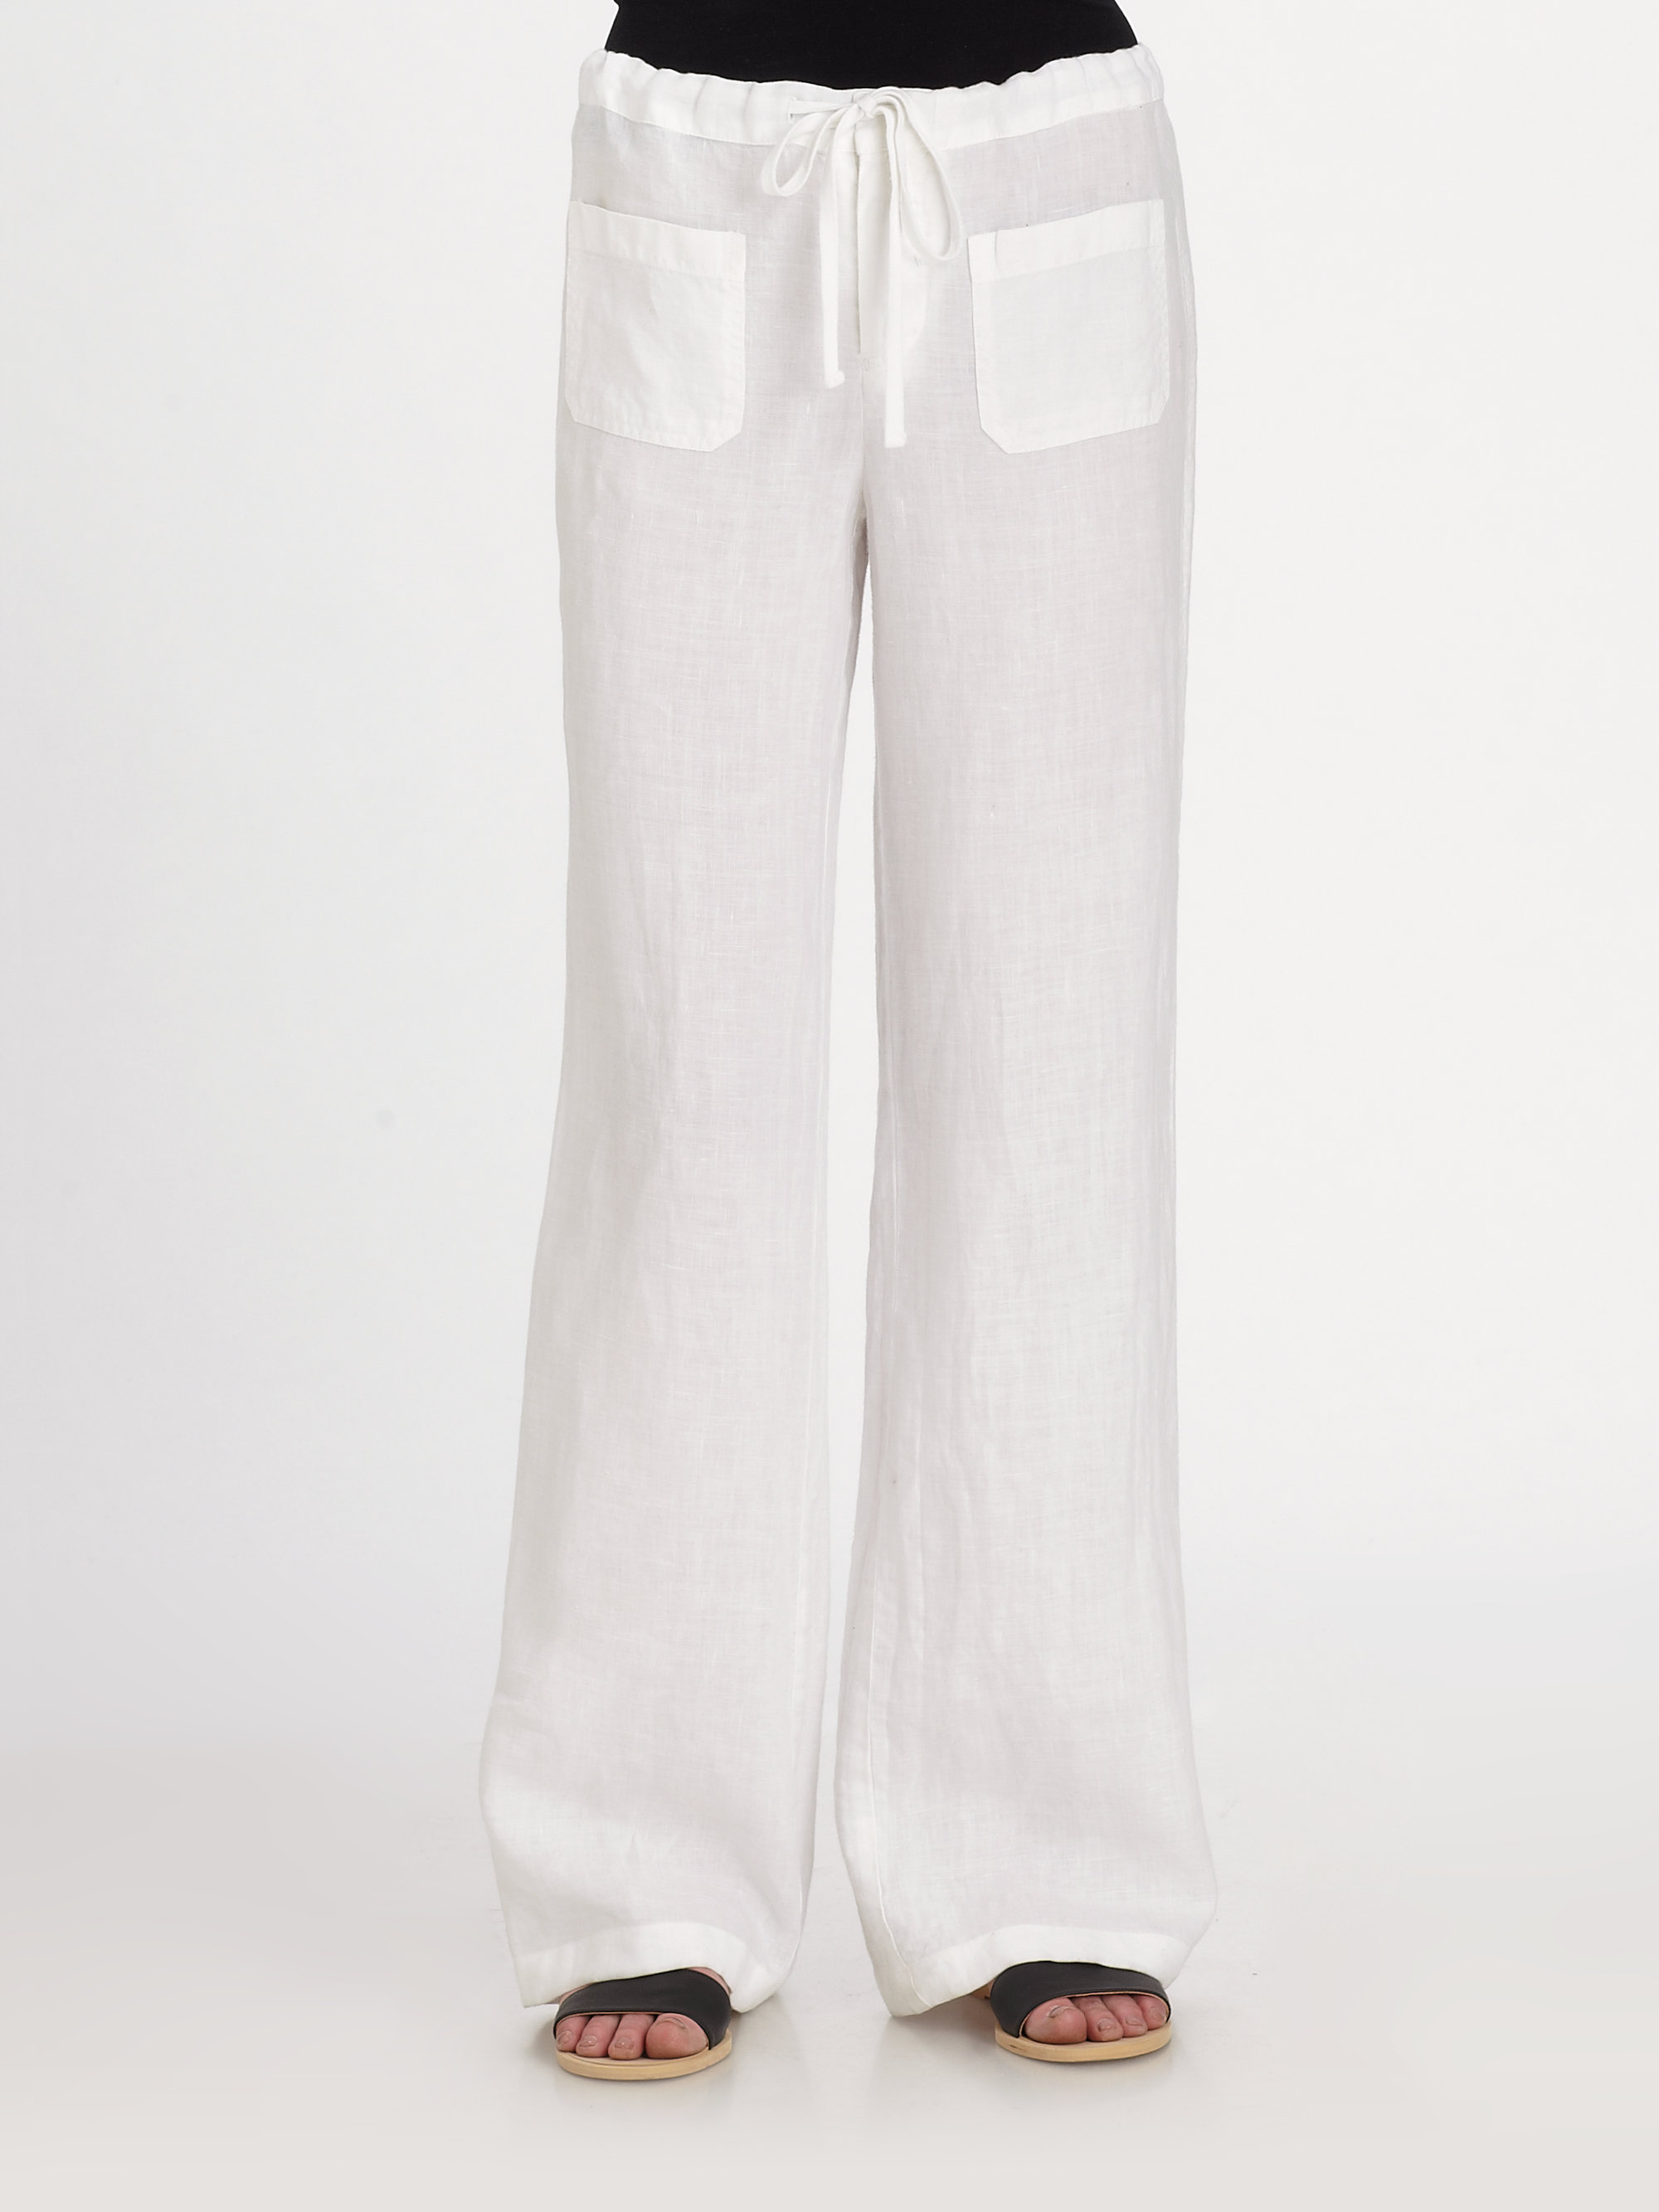 Girls Linen Pants